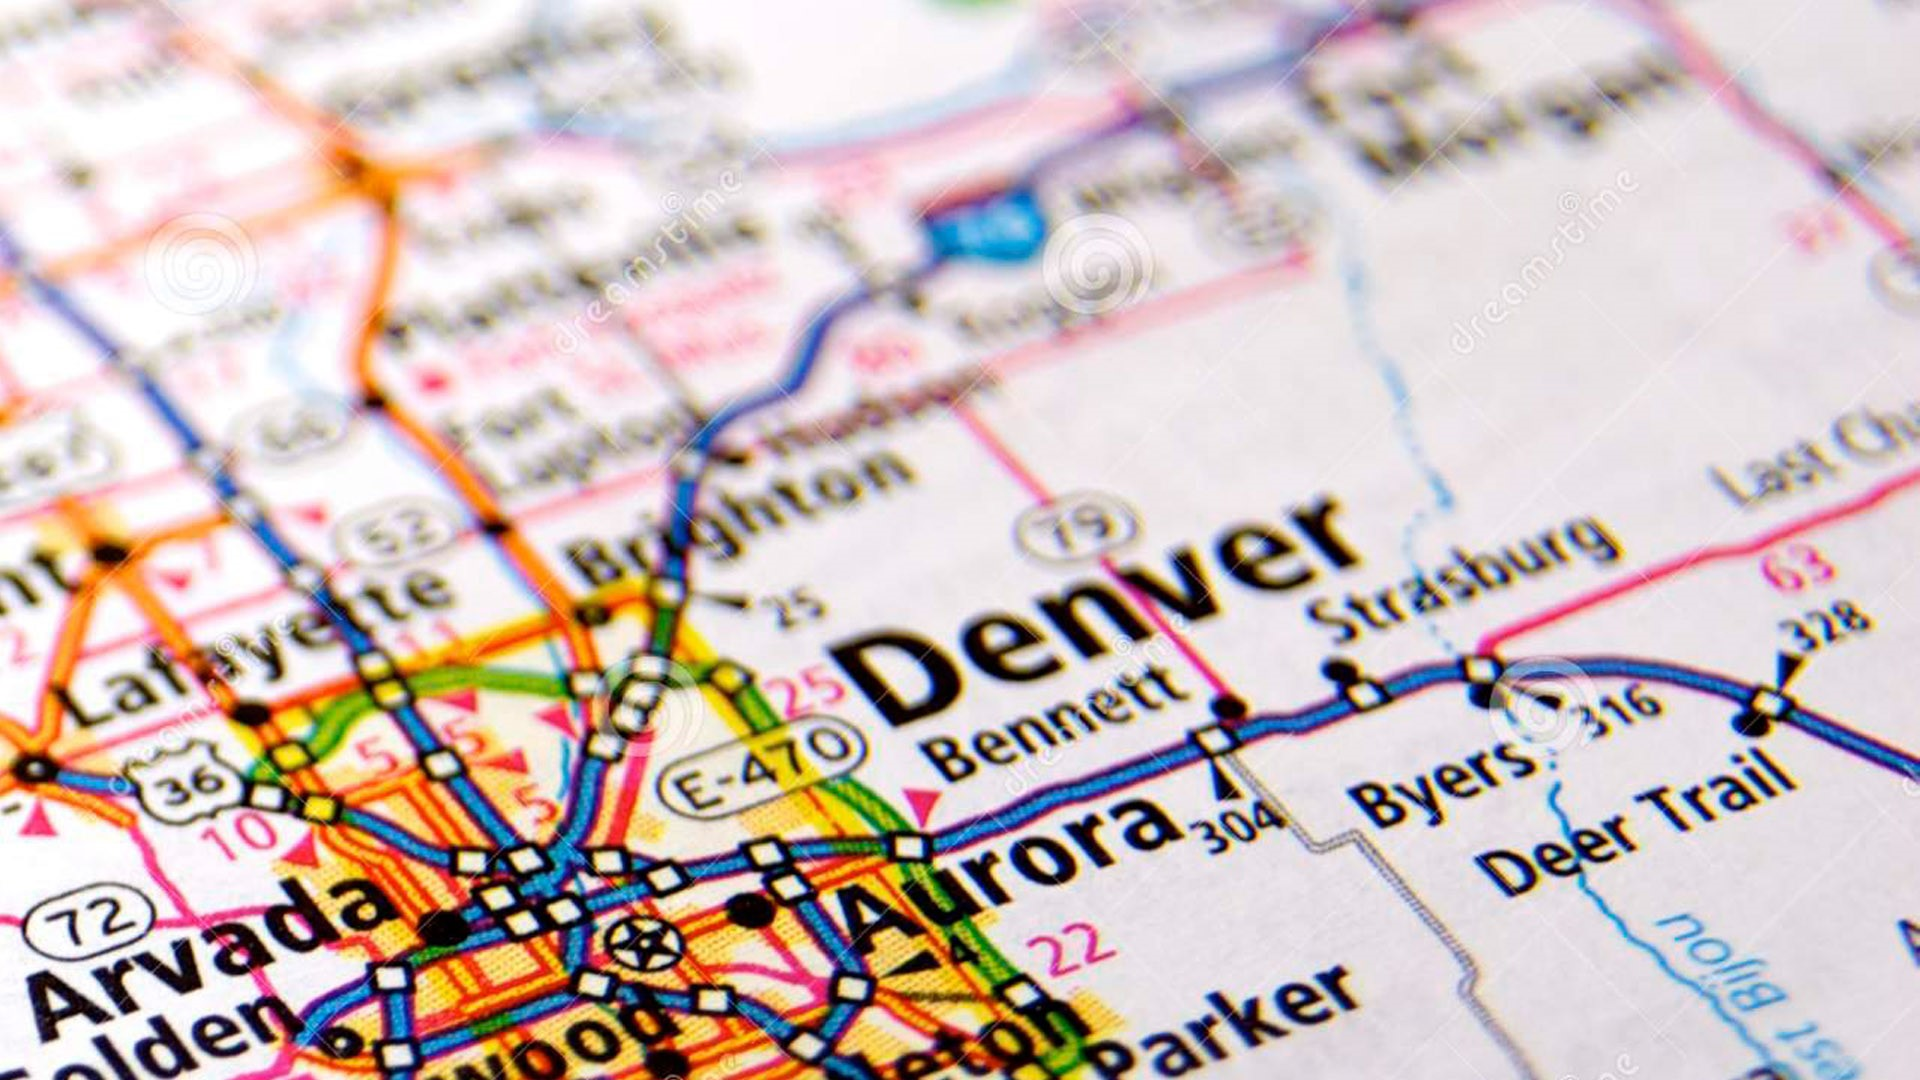 Denver Airport Transportation Service